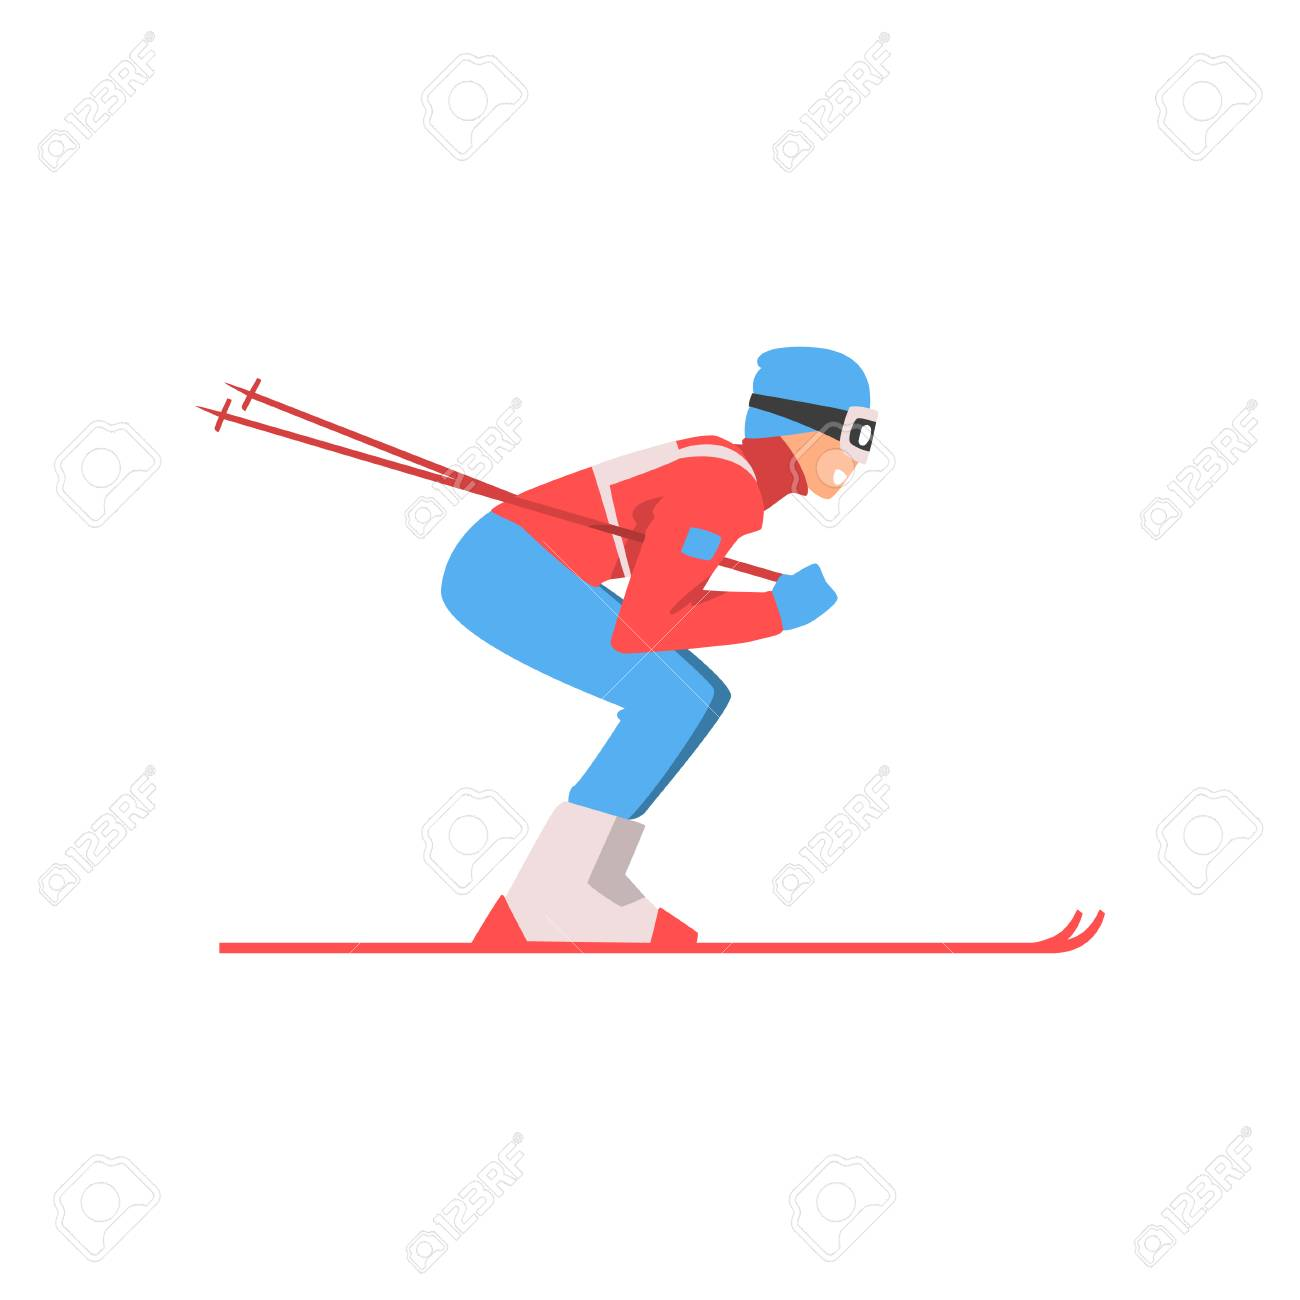 Skiing Sportsman, Male Athlete Character in Sports Uniform and Goggles, Active Sport Healthy Lifestyle Vector Illustration on White Background. - 125835185